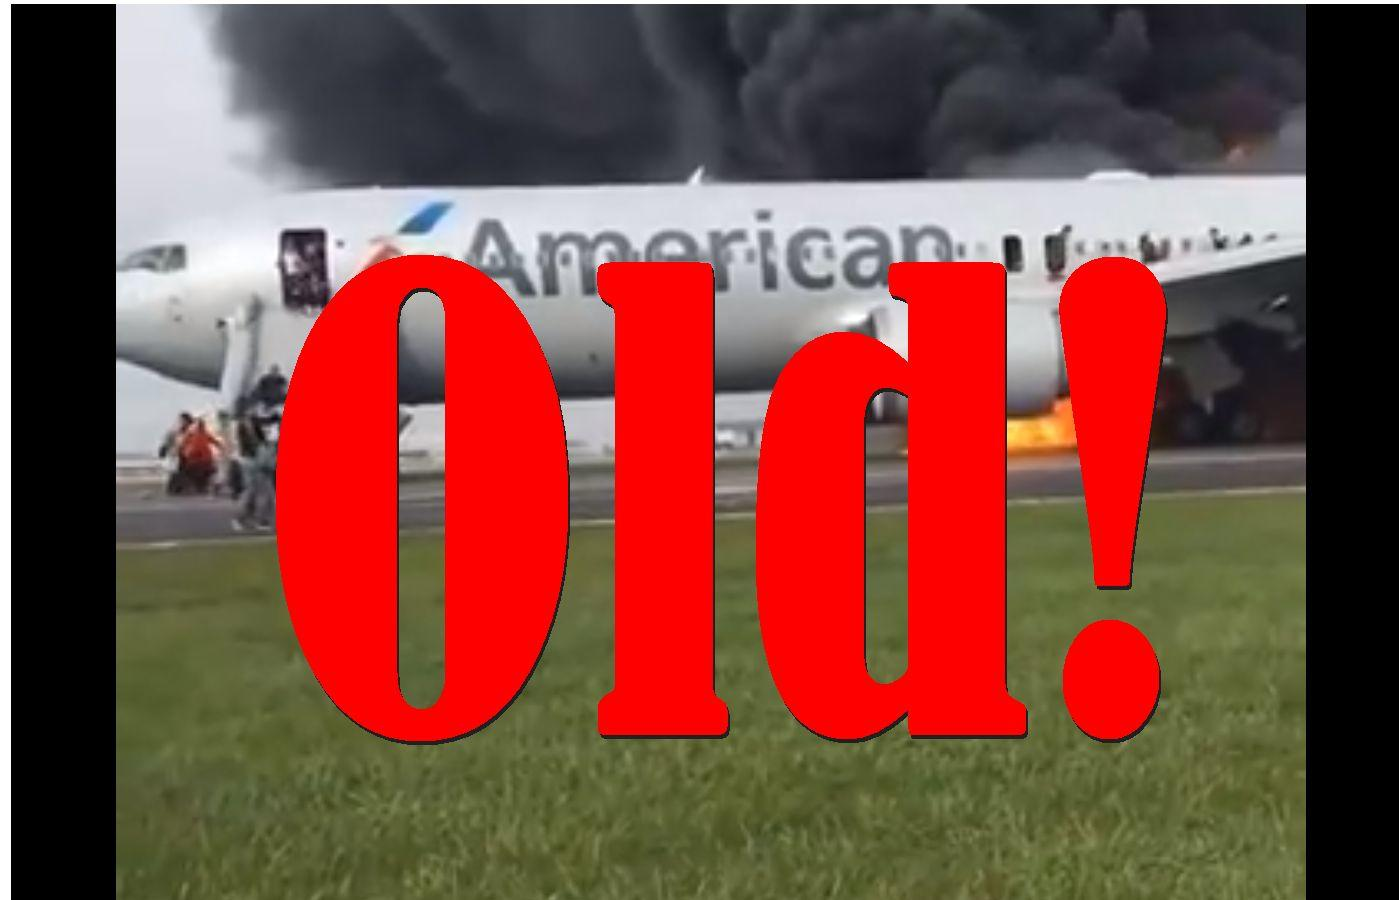 Fake News: There Is NO American Airlines Plane On Fire Right Now